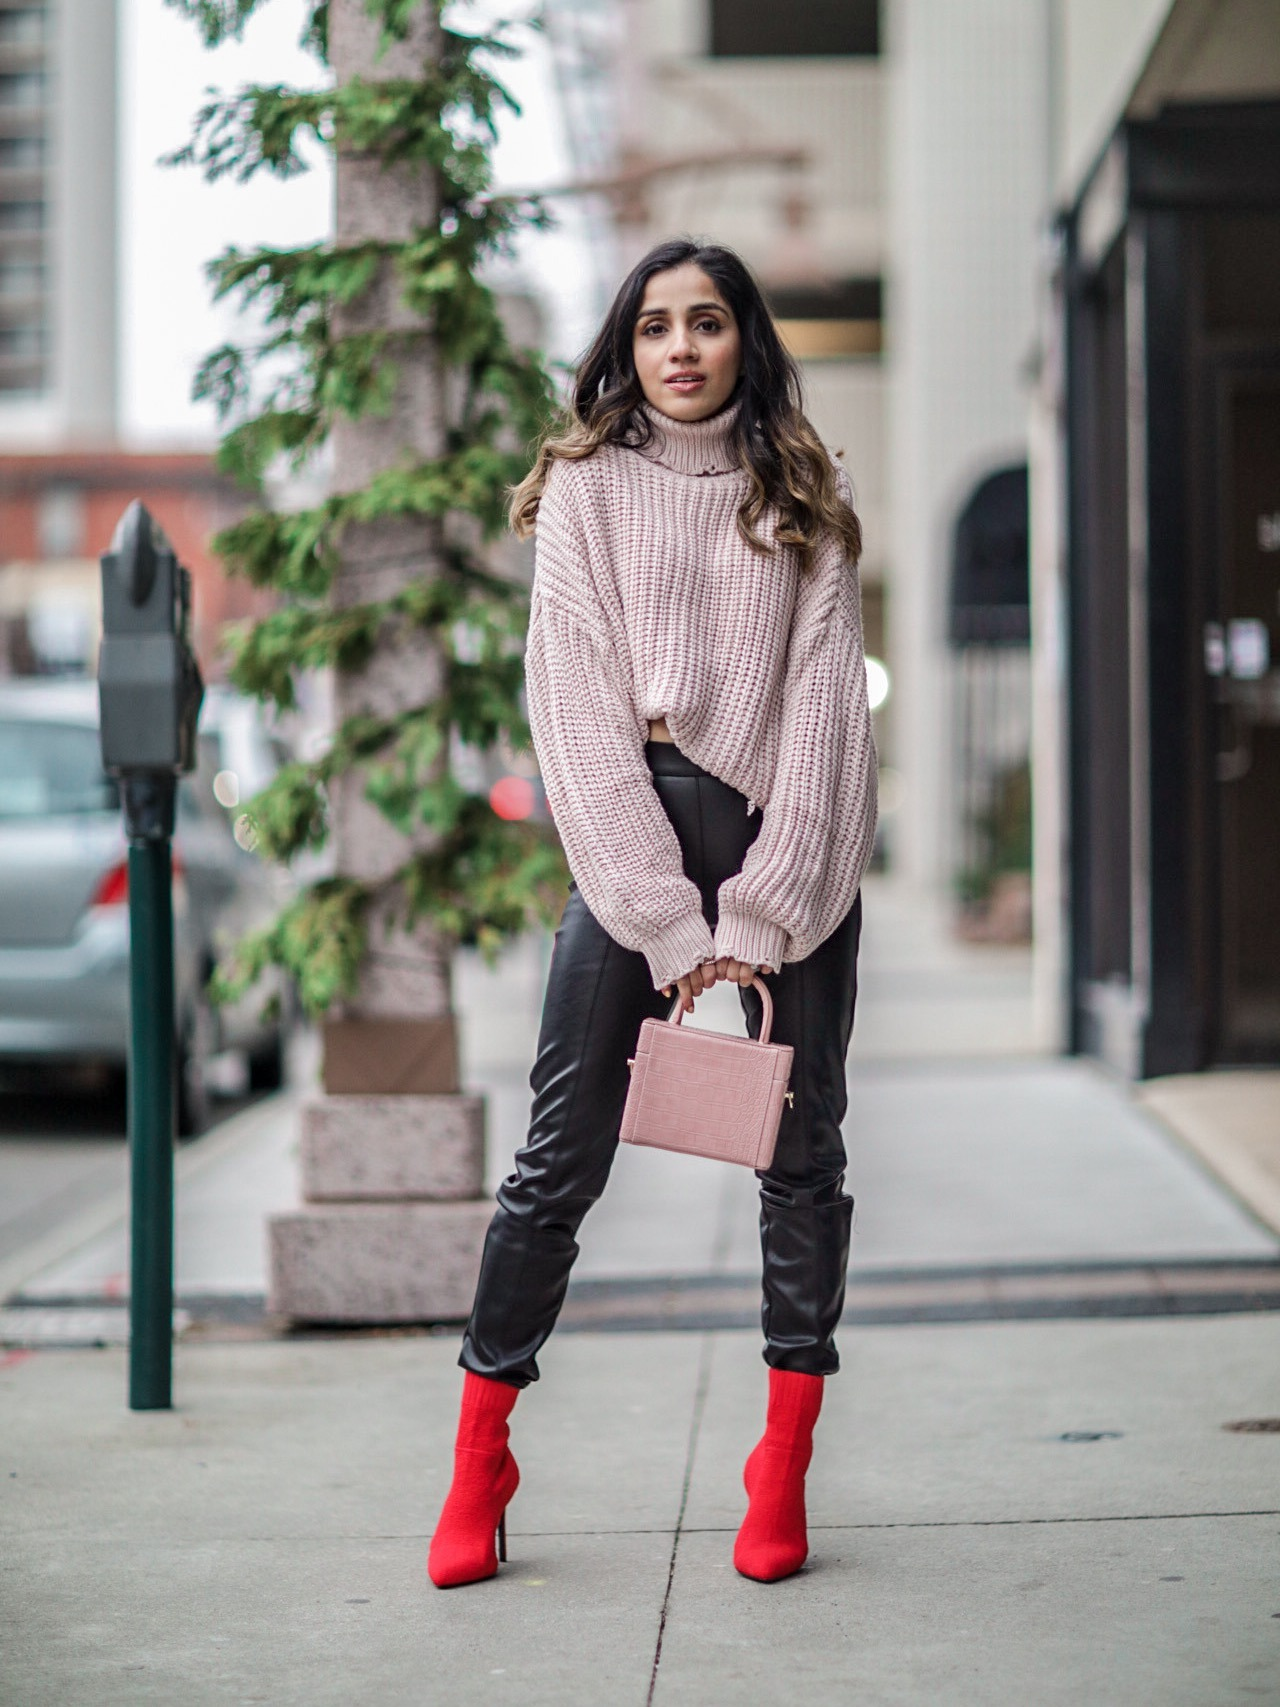 5 Winter Basics Everyone Should Have in Their Closet Faiza Inam cold weater basics must have turtleneck sweater 7